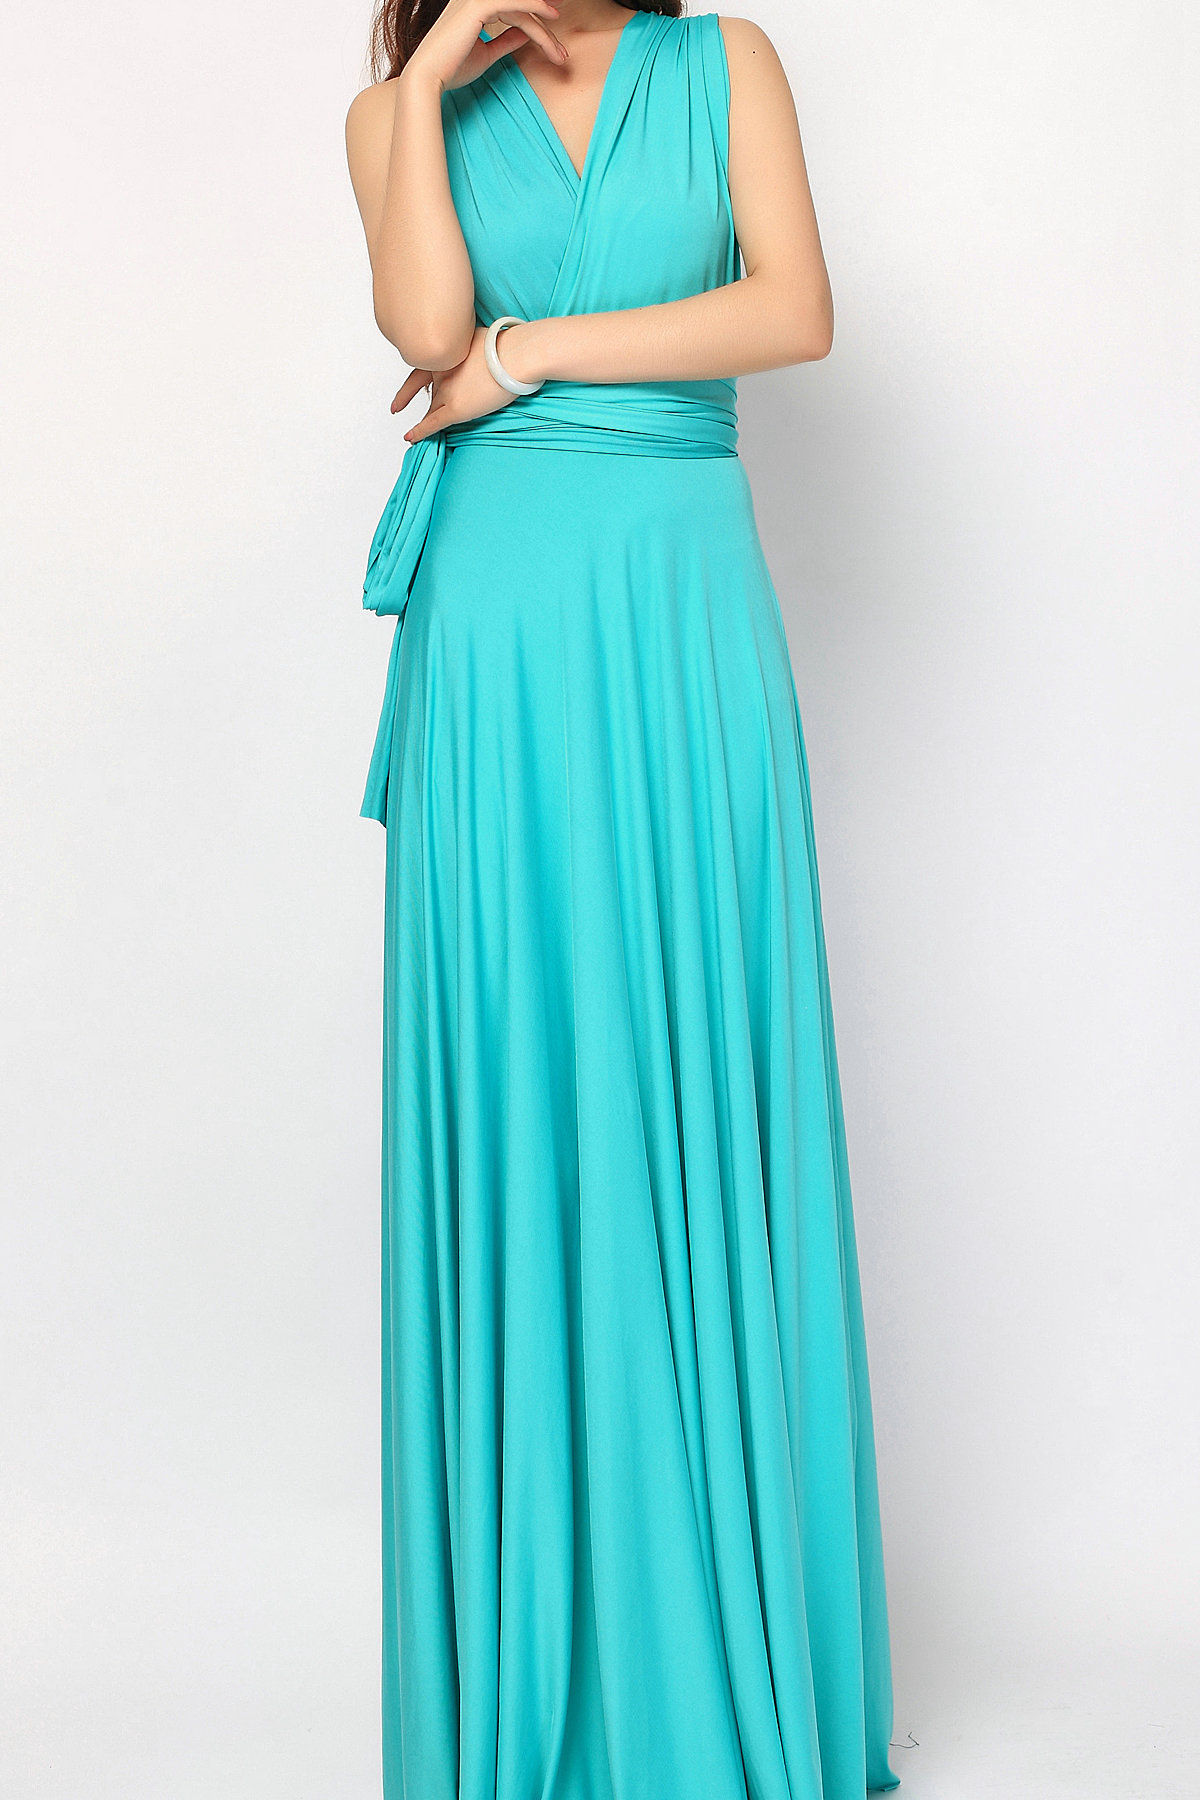 TURQUOISE GREEN Bridesmaids Dress, Turquoise Floor Length Maxi Wrap ...